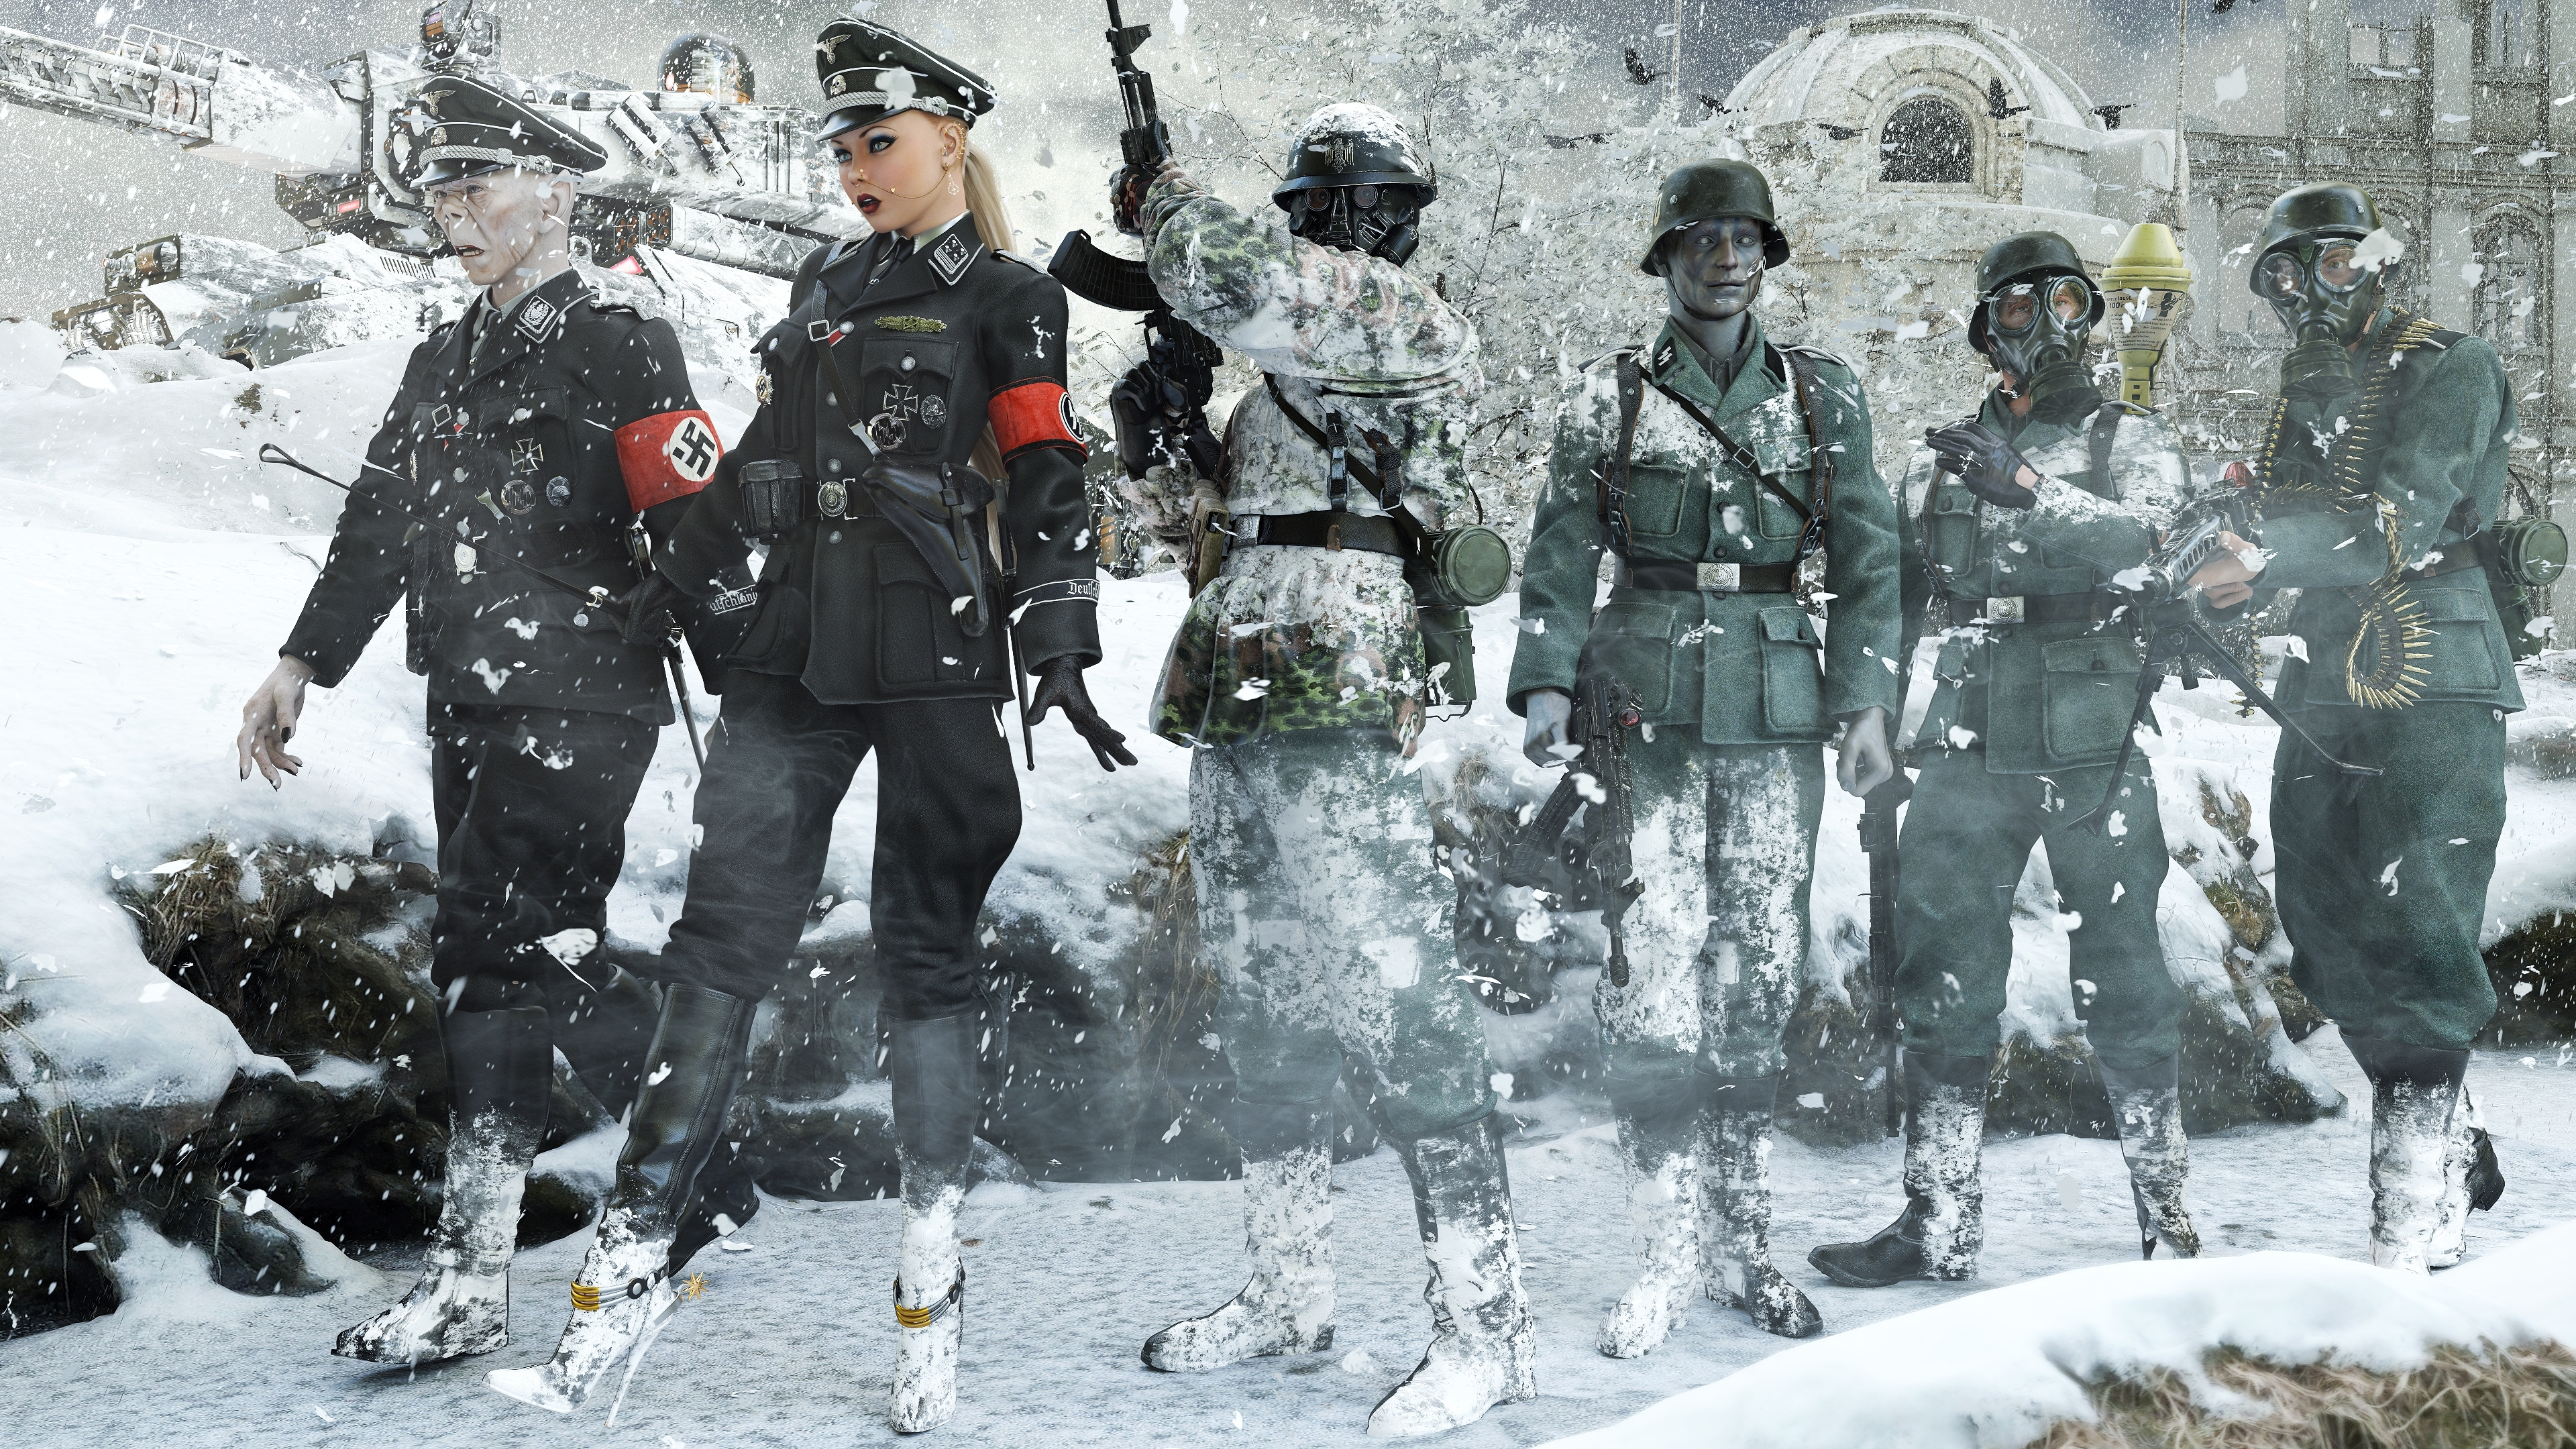 Nazi zombies in the blizzard